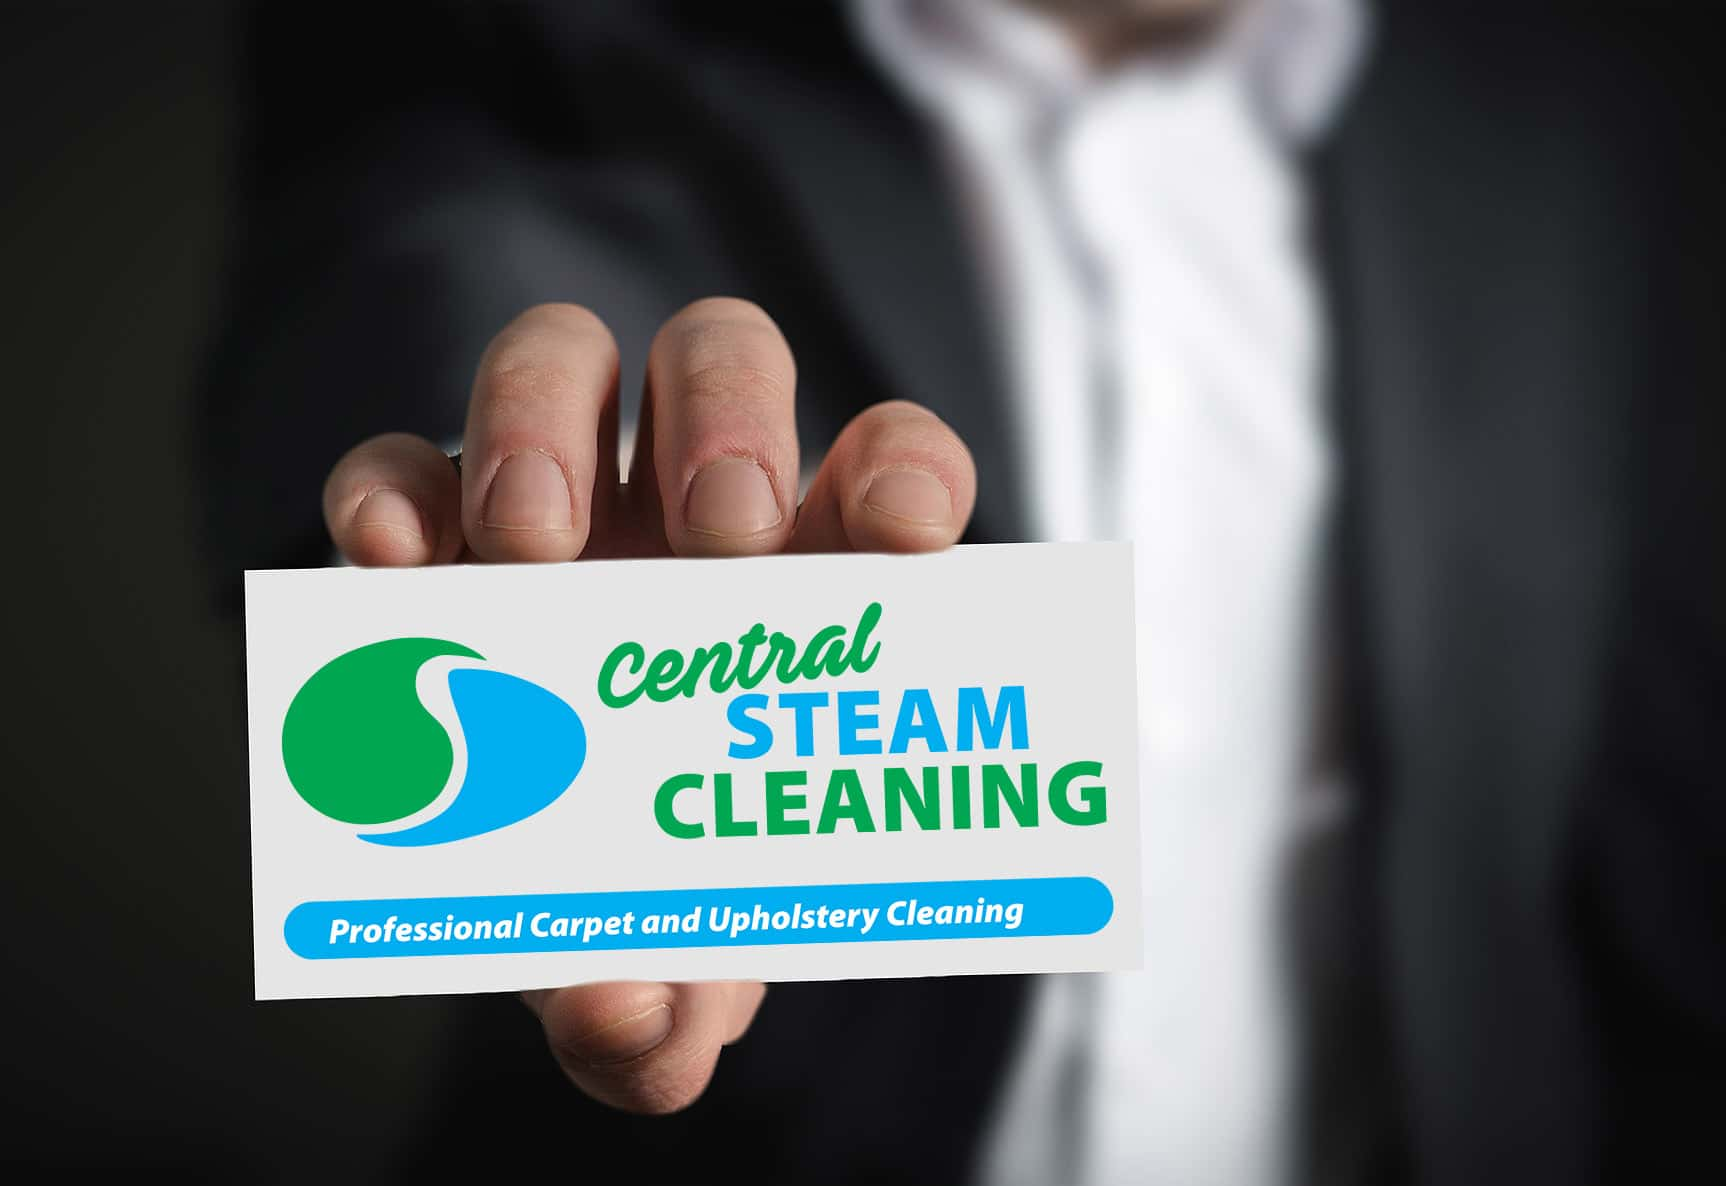 Carpet and upholstery cleaners Stirling - steam cleaning logo